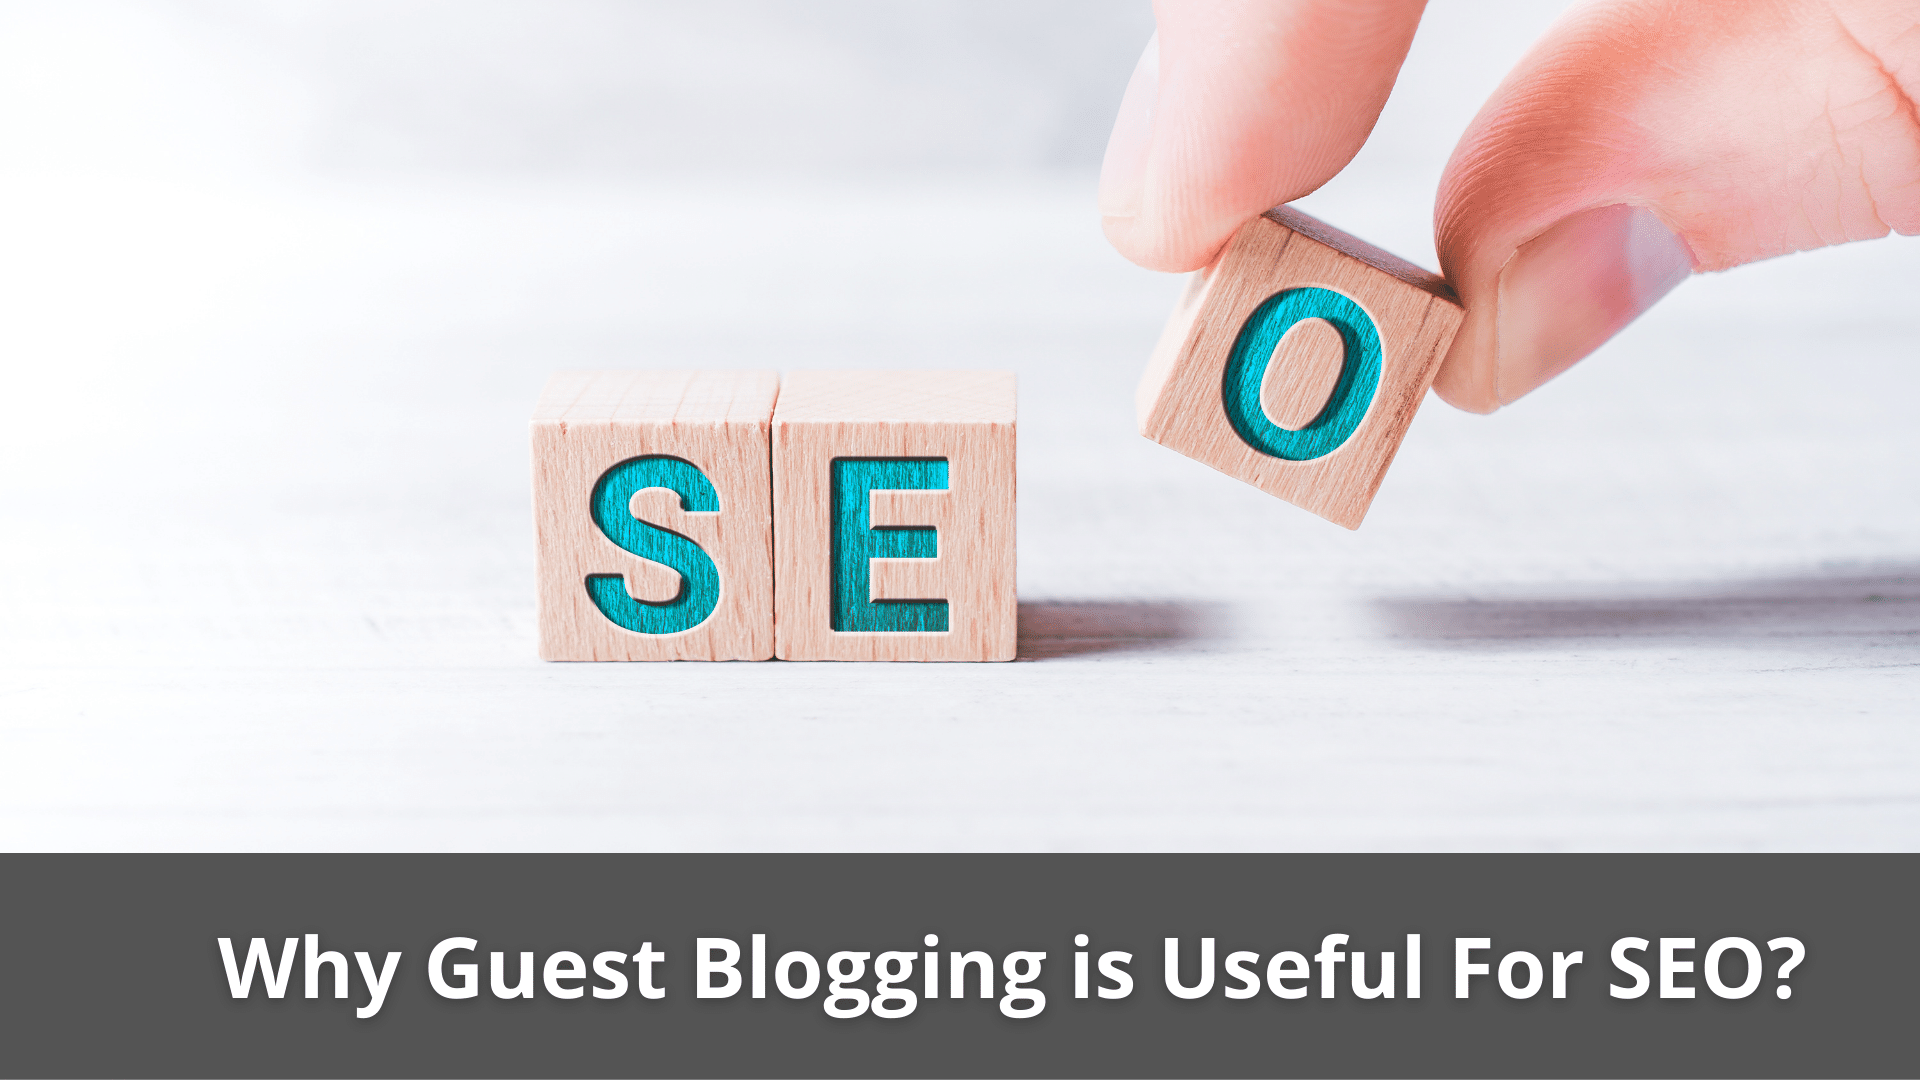 Why Guest Blogging is Useful so For SEO? 6